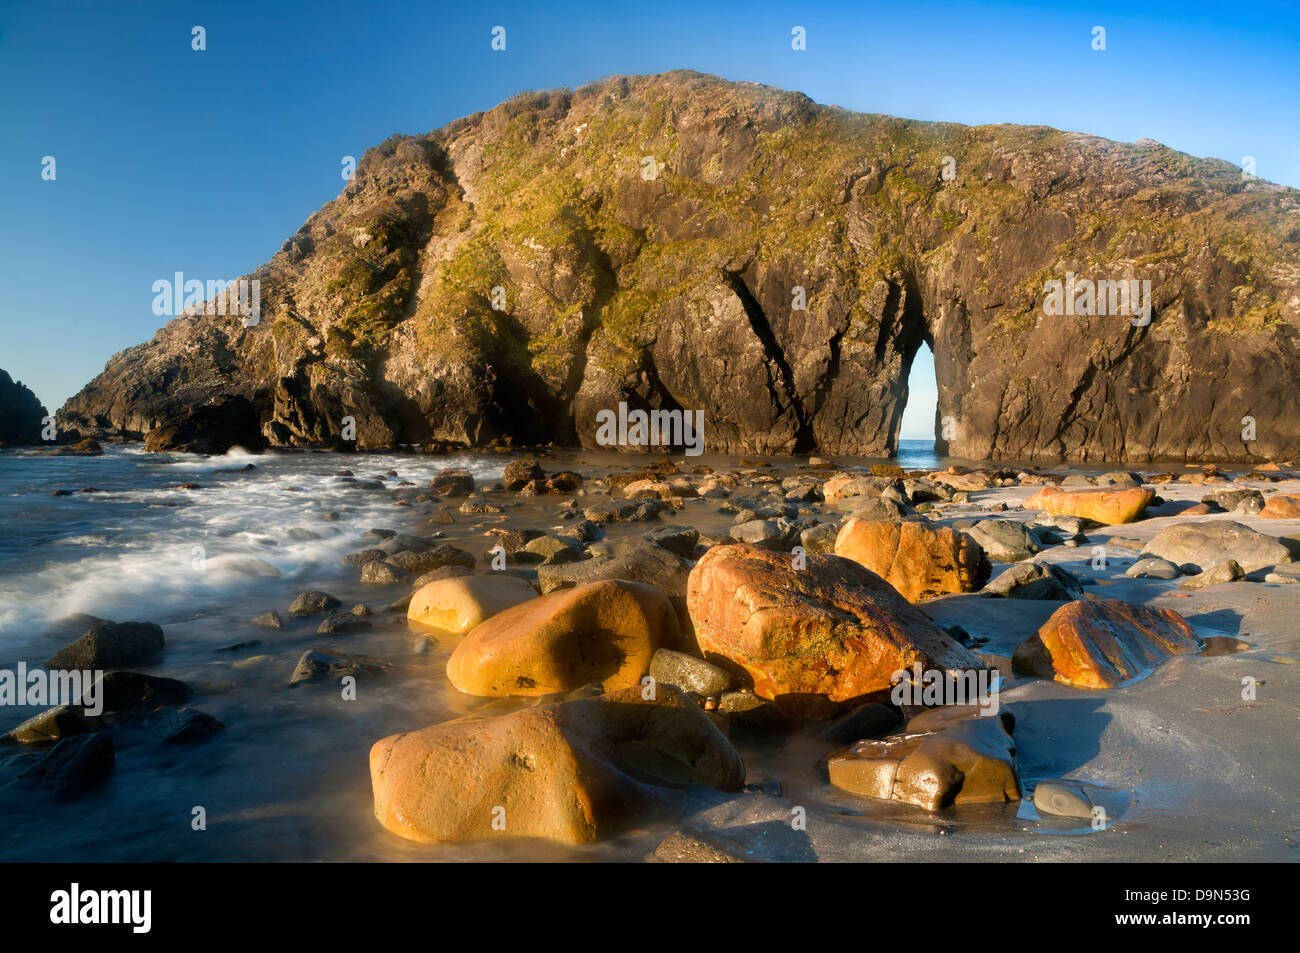 OR01082-00...OREGON - Colorful boulders on Rock Beach in Harris Beach State Recreation Area. - Stock Image